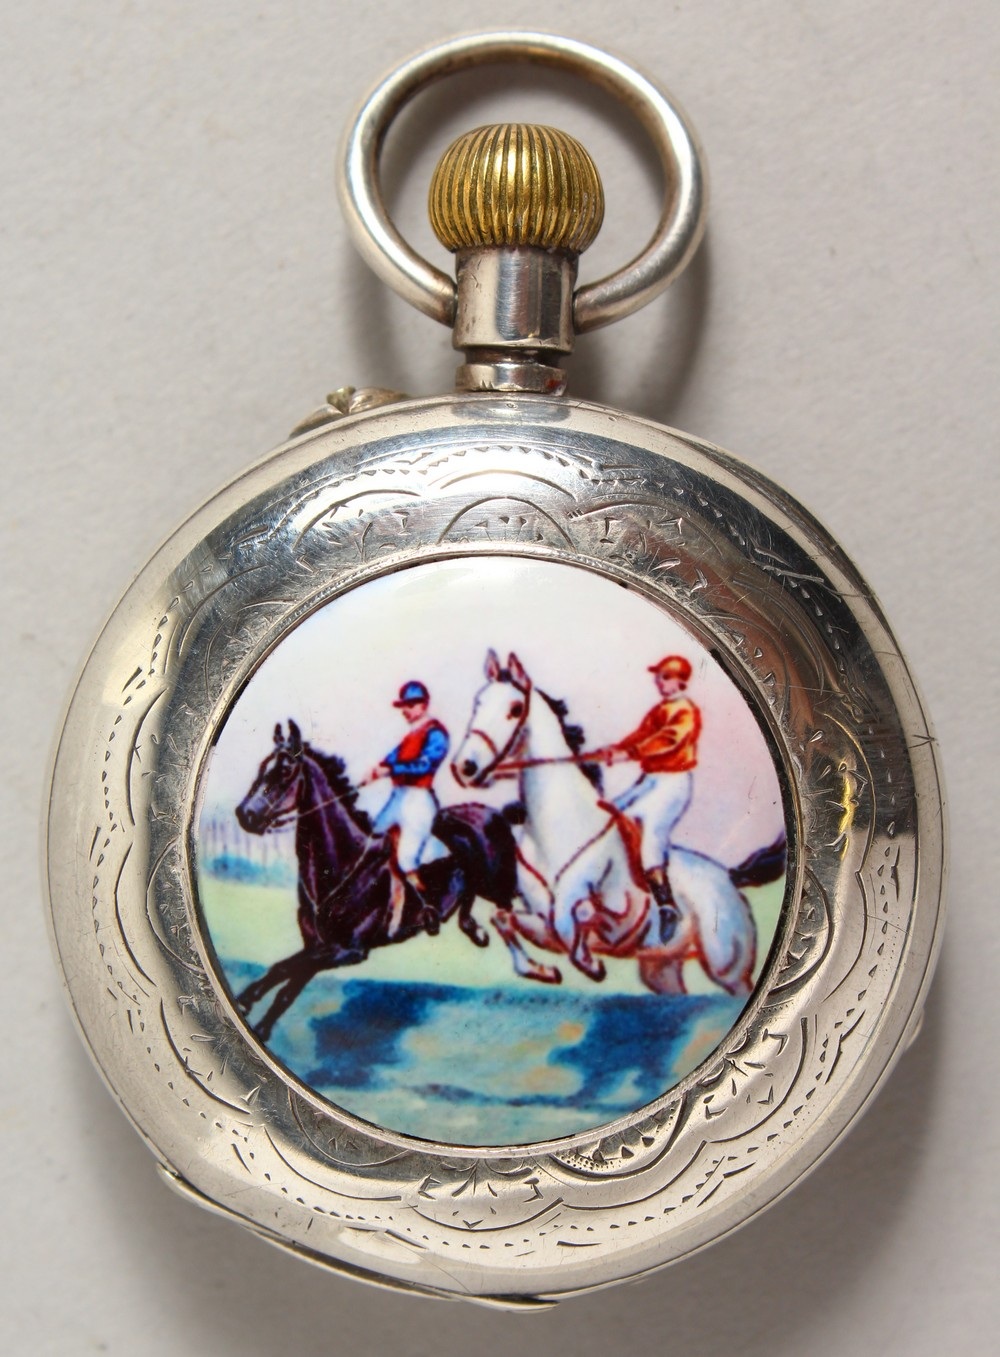 Lot 1863 - A SILVER FOUR DIAL POCKET WATCH, the back with an enamel of a steeplechase.